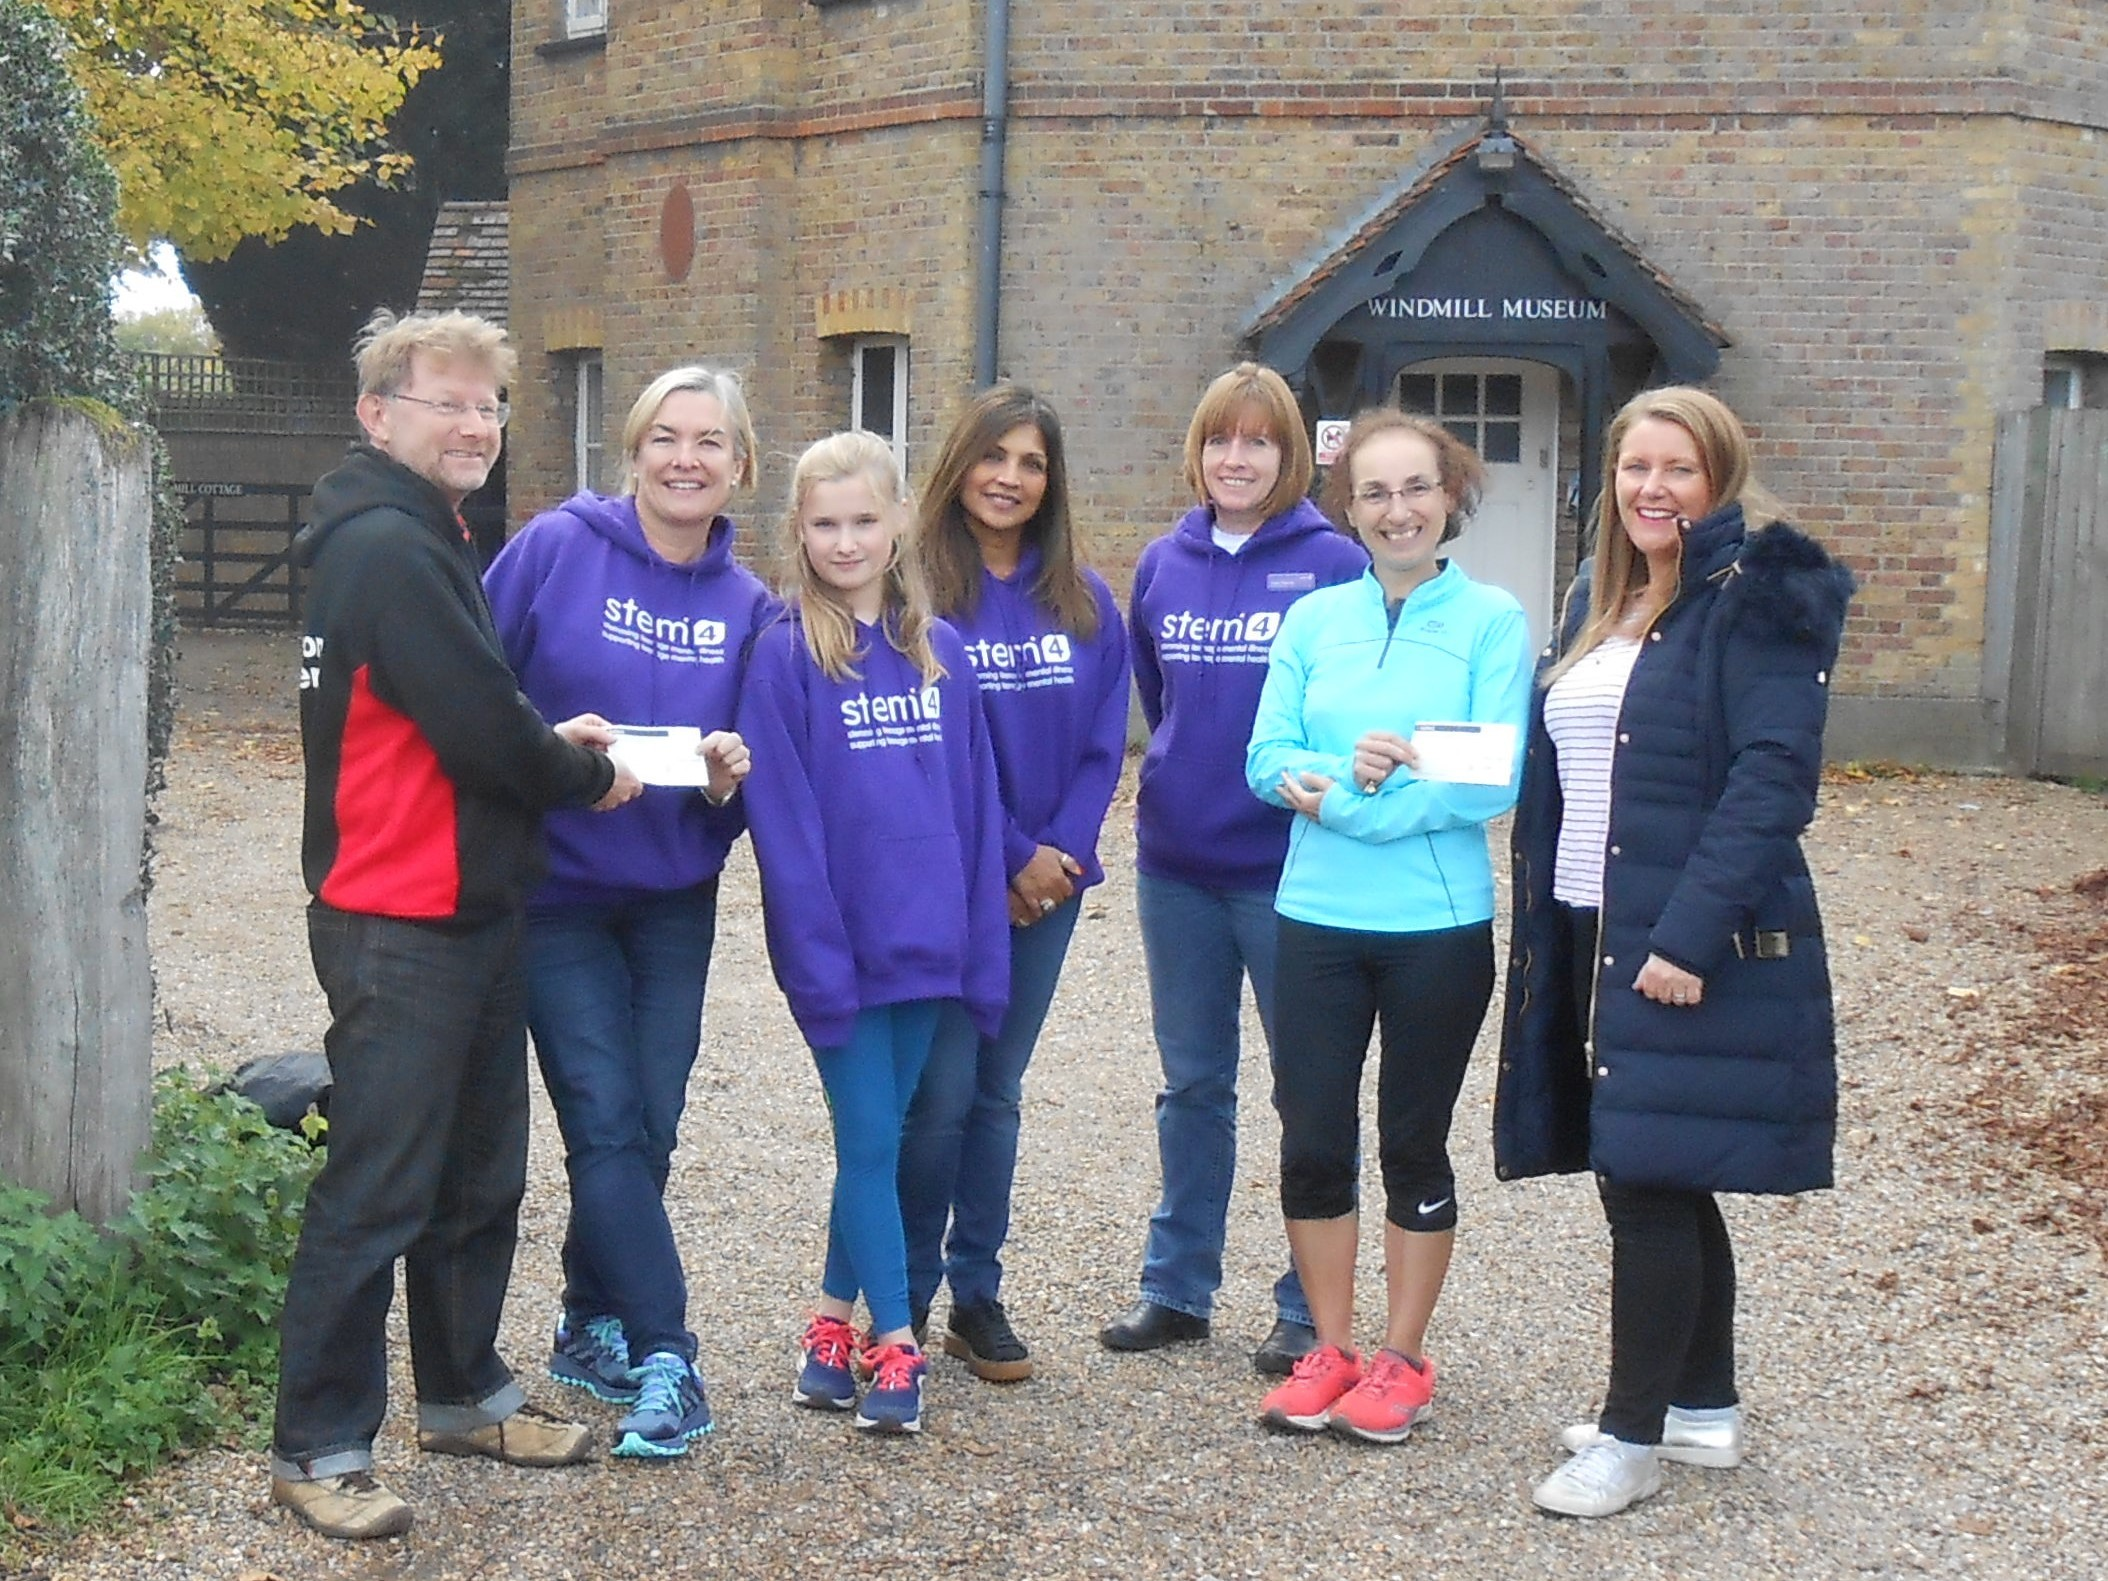 Runners raise money from charity